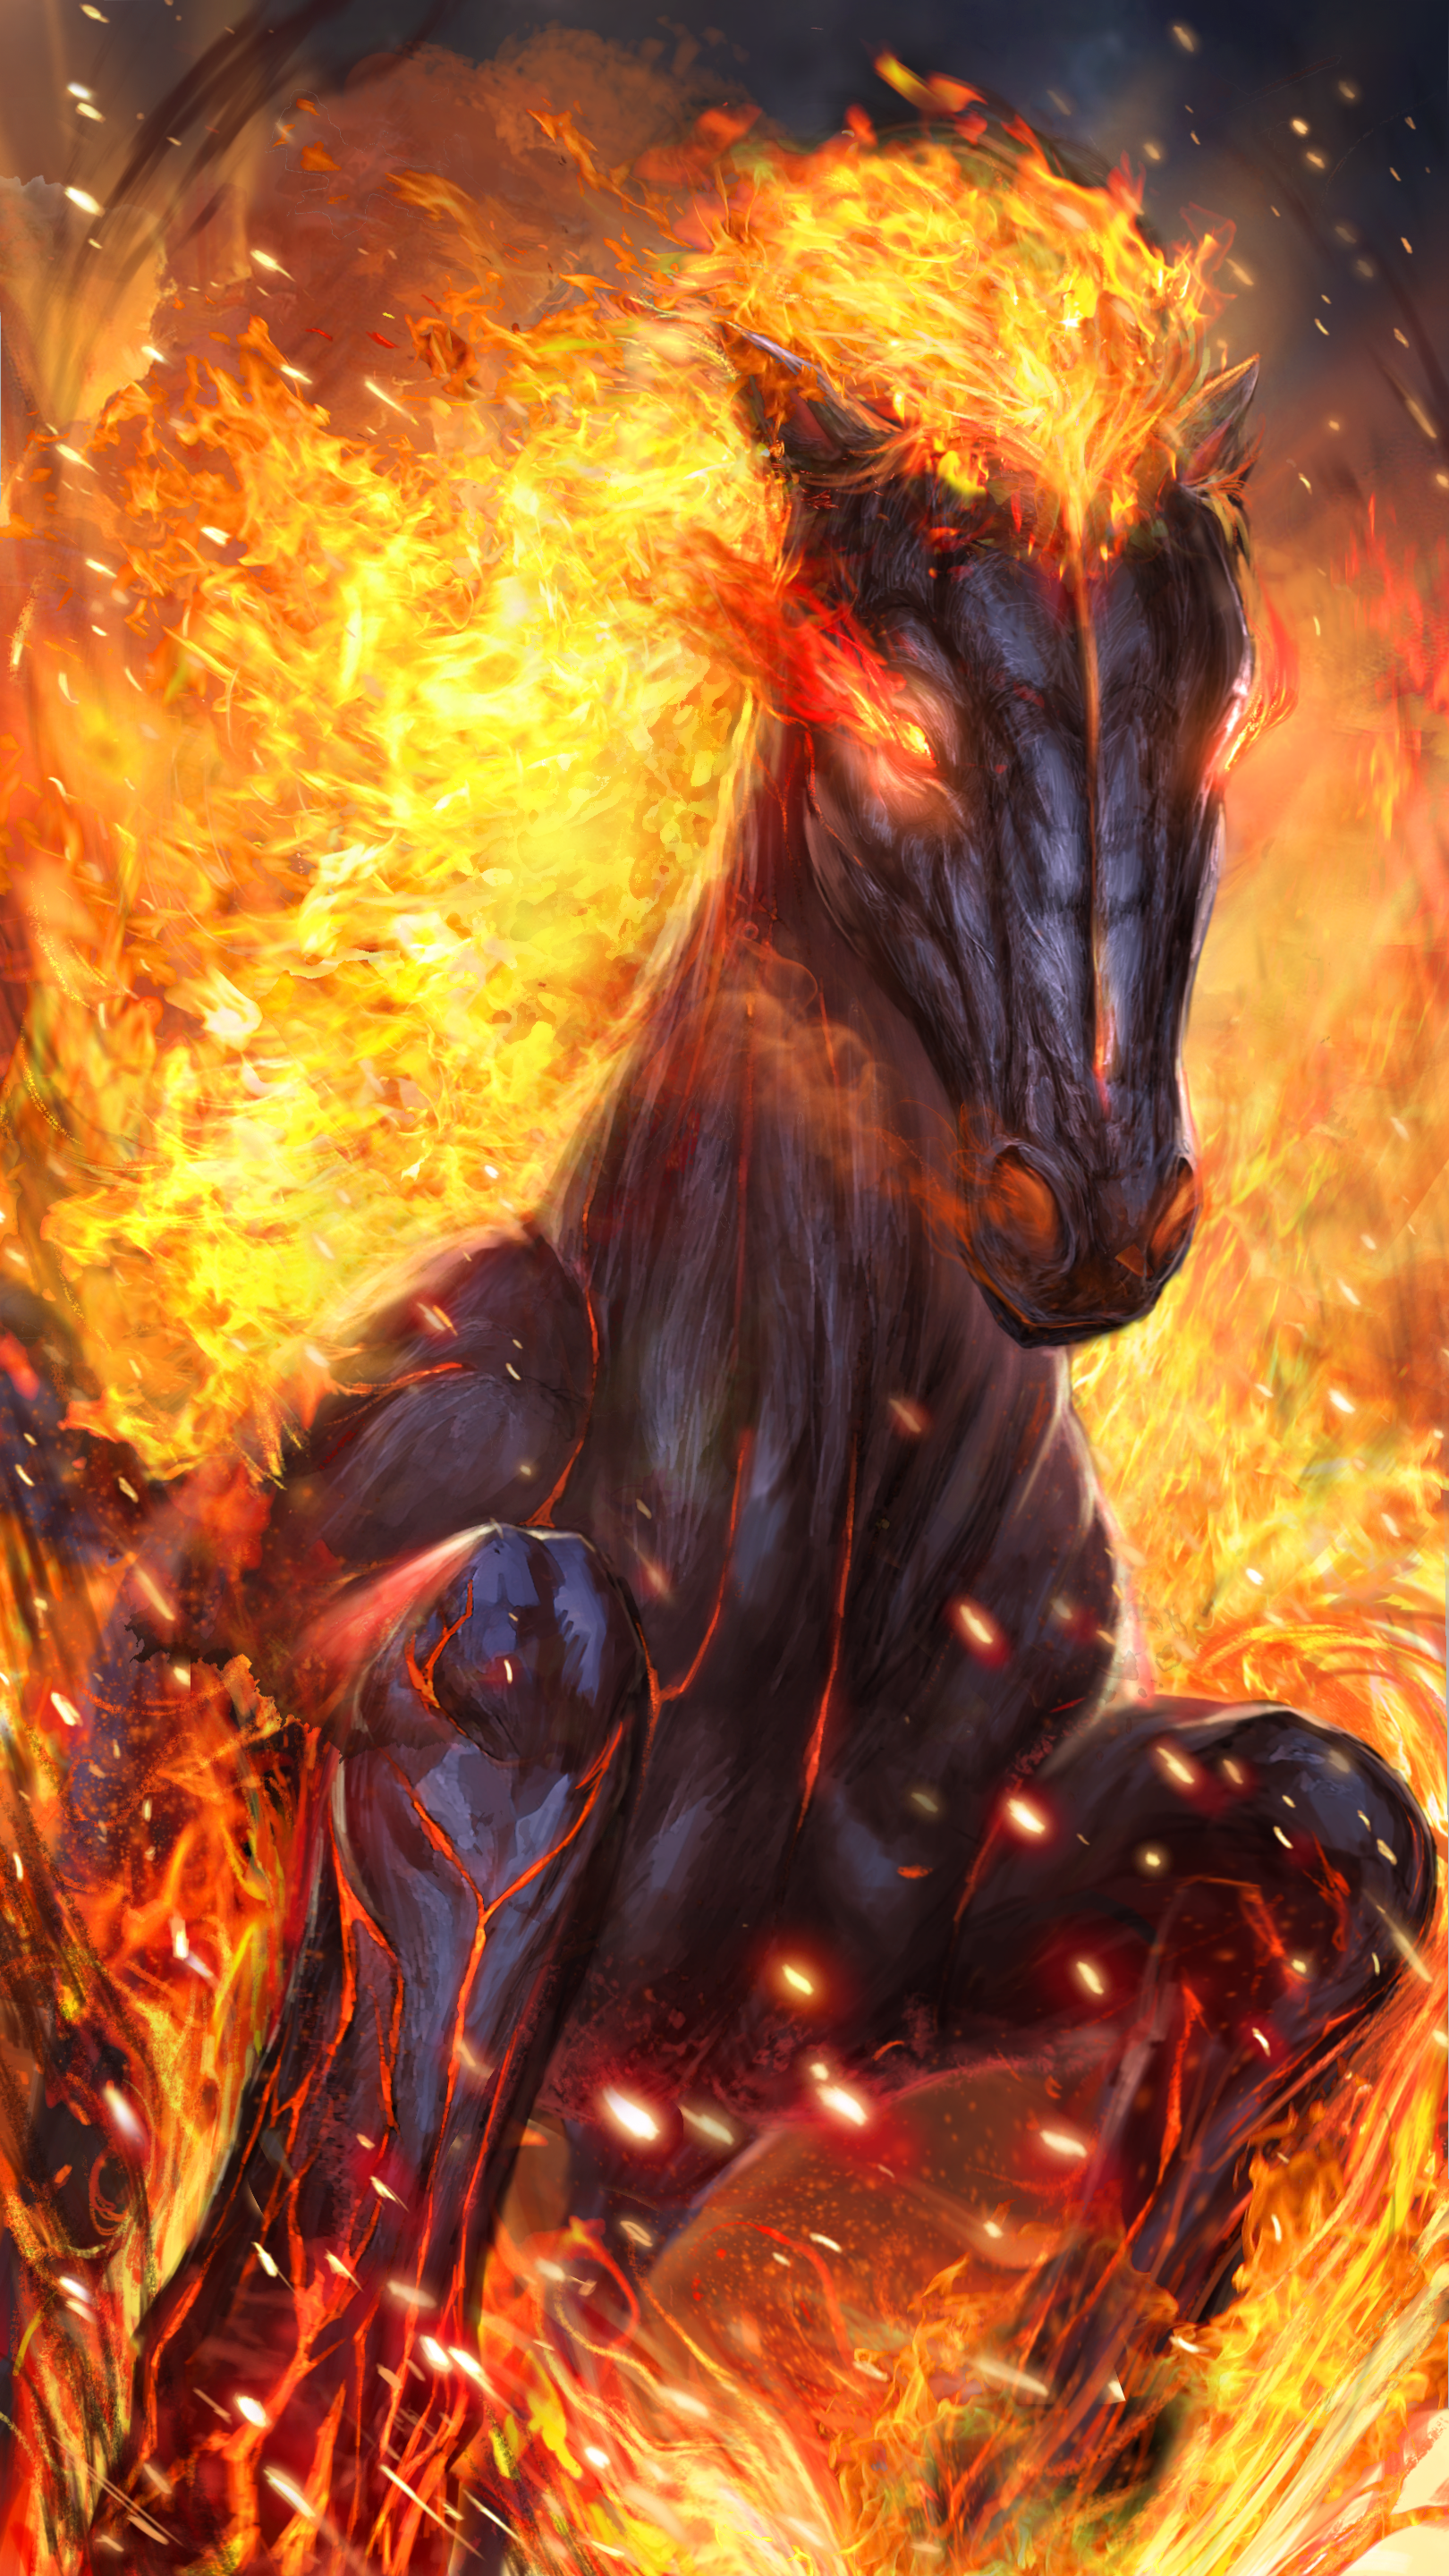 1620x2880 Hot fire horse live wallpaper! | Android live wallpapers ...